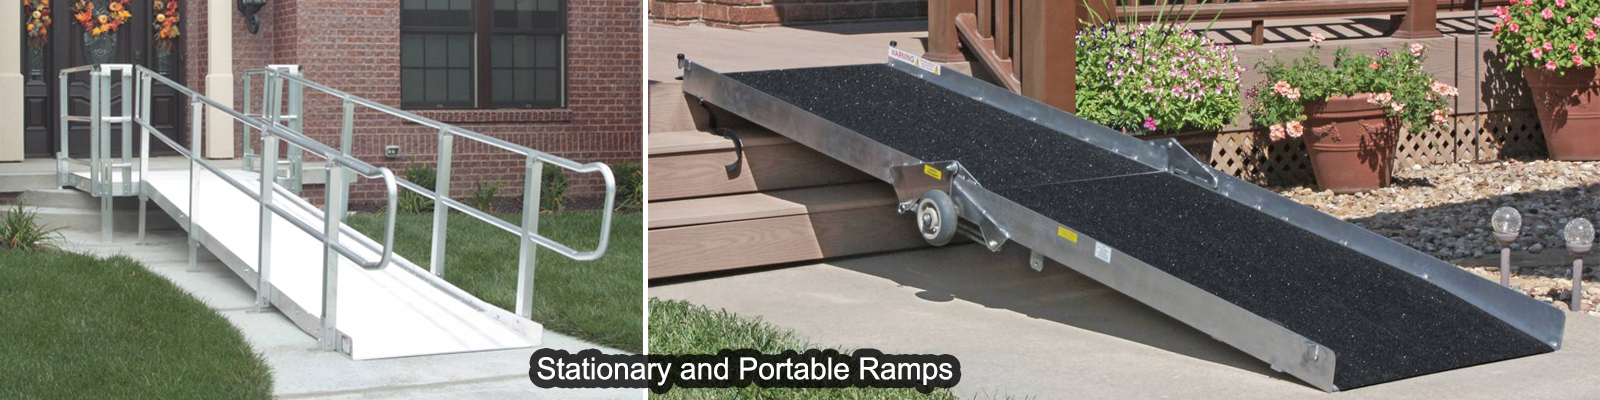 Stationary and Portable Ramps